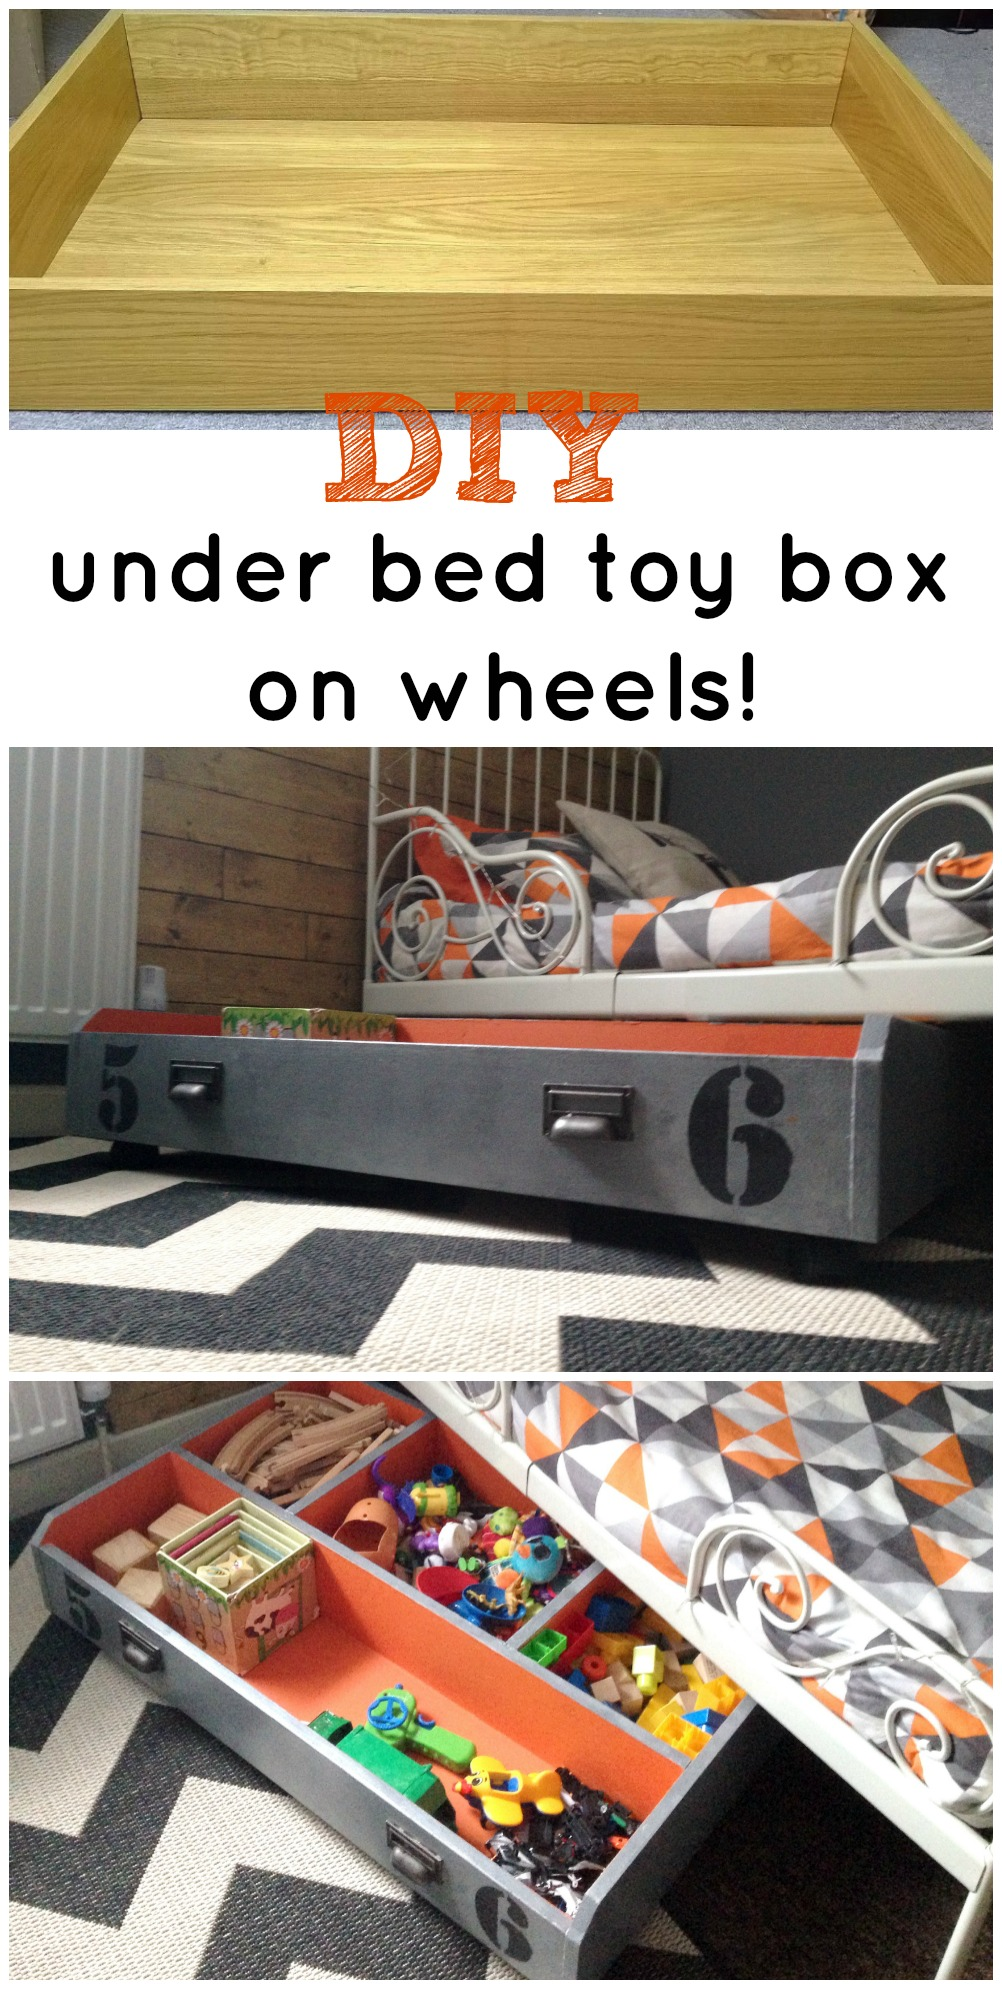 Ikea Pax Drawer To Under Bed Toy Box On Wheels Grillo Designs